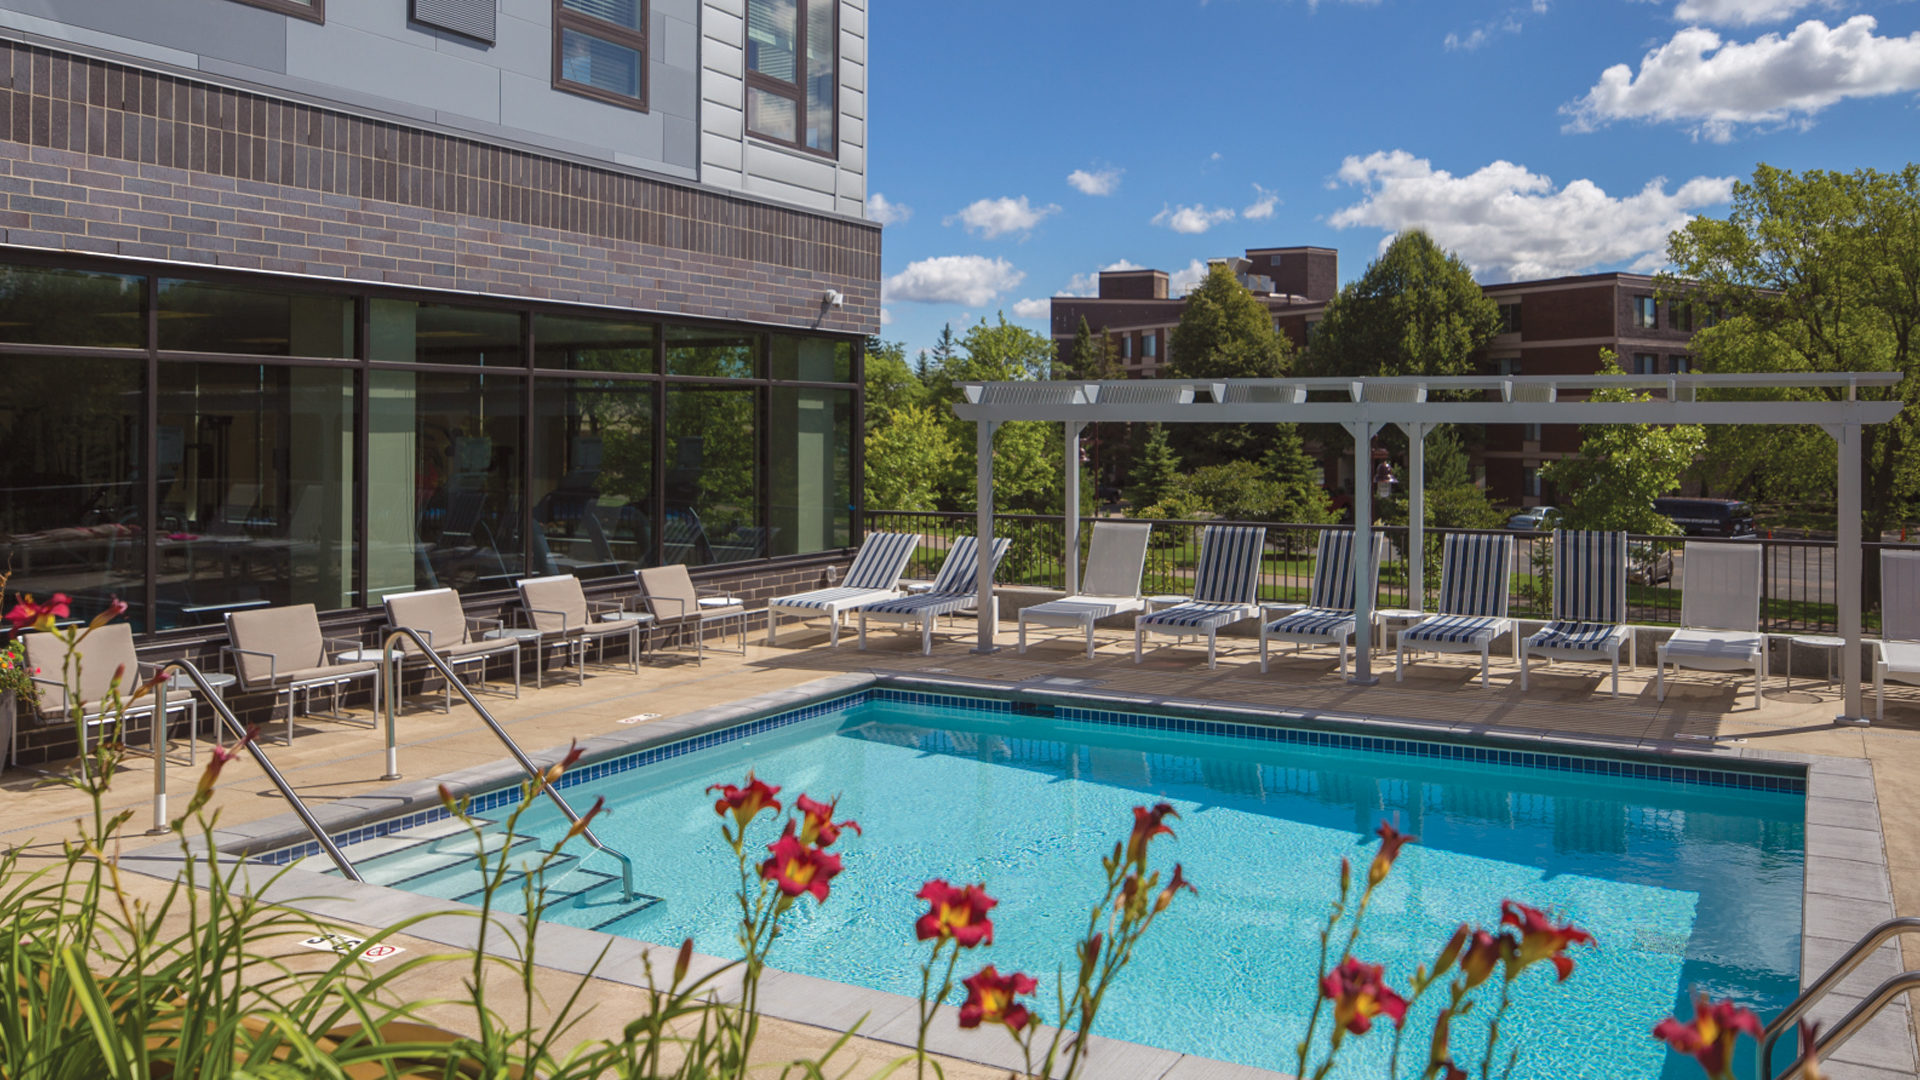 71 France Apartments Exterior Courtyard Pool